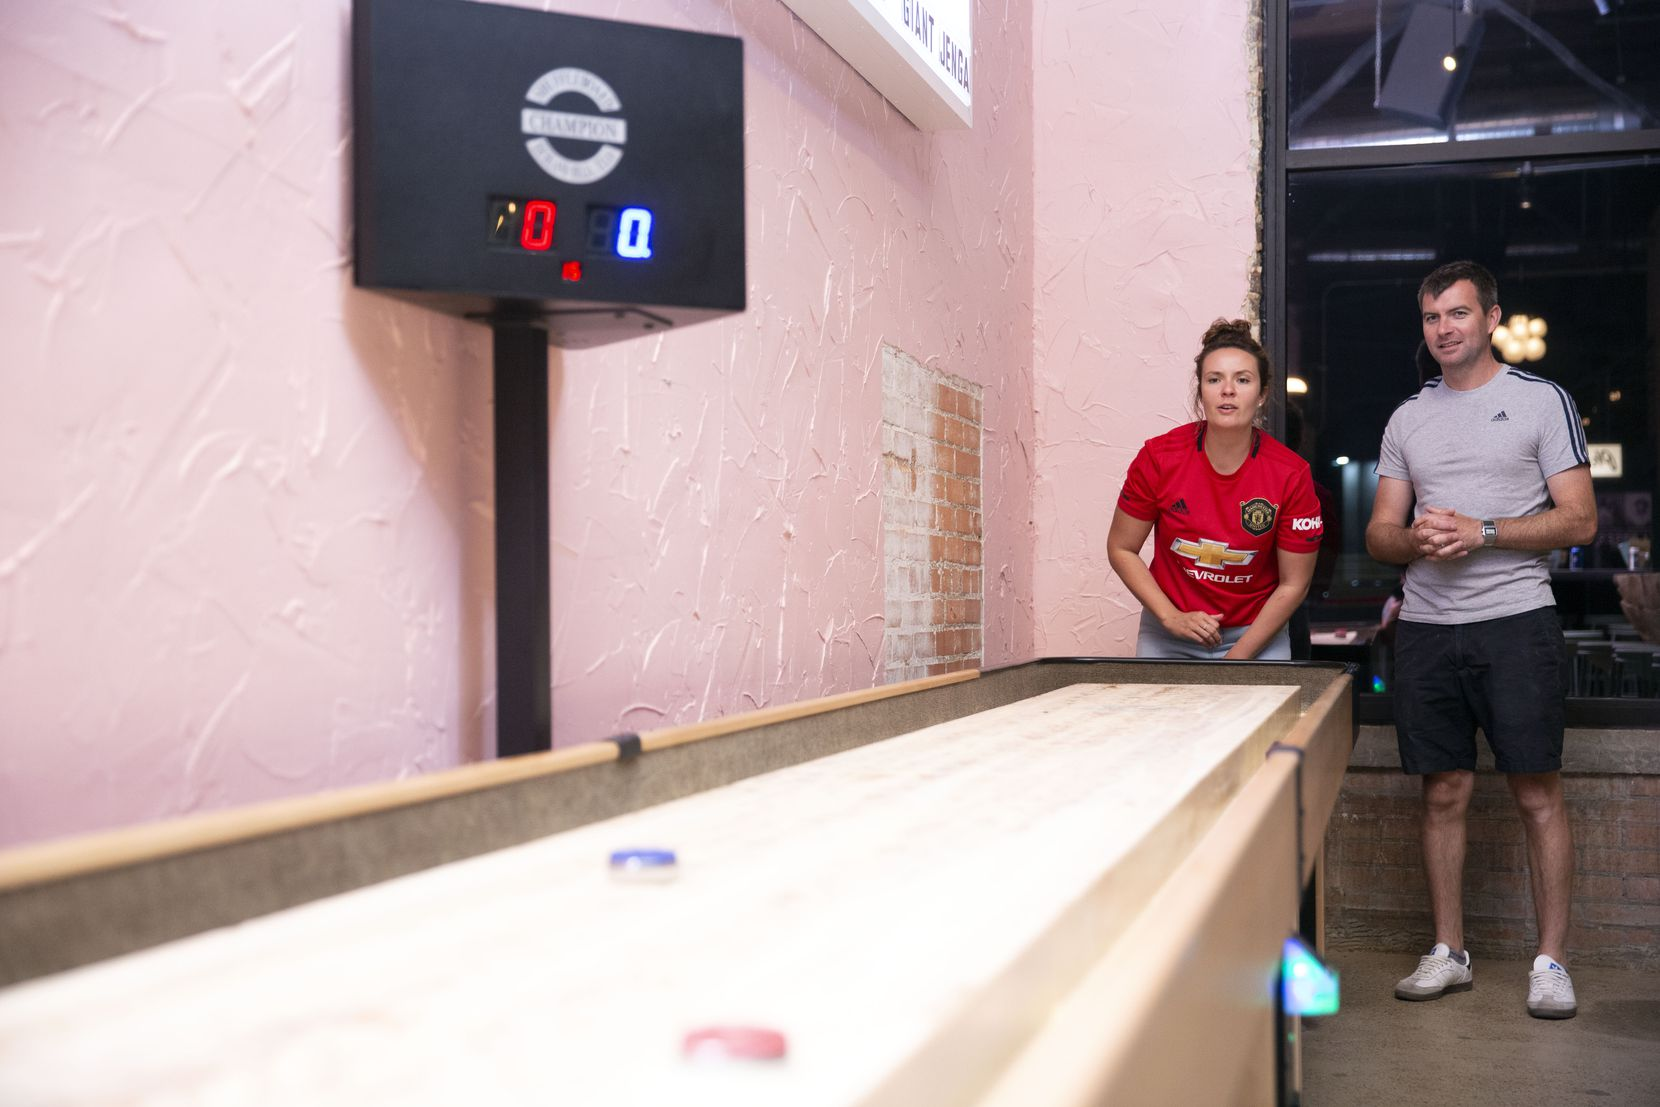 Pia Barnett, left, and Chris Hill, right, play shuffleboard at Punch Bowl Social. This photo was taken pre-pandemic, in 2019.